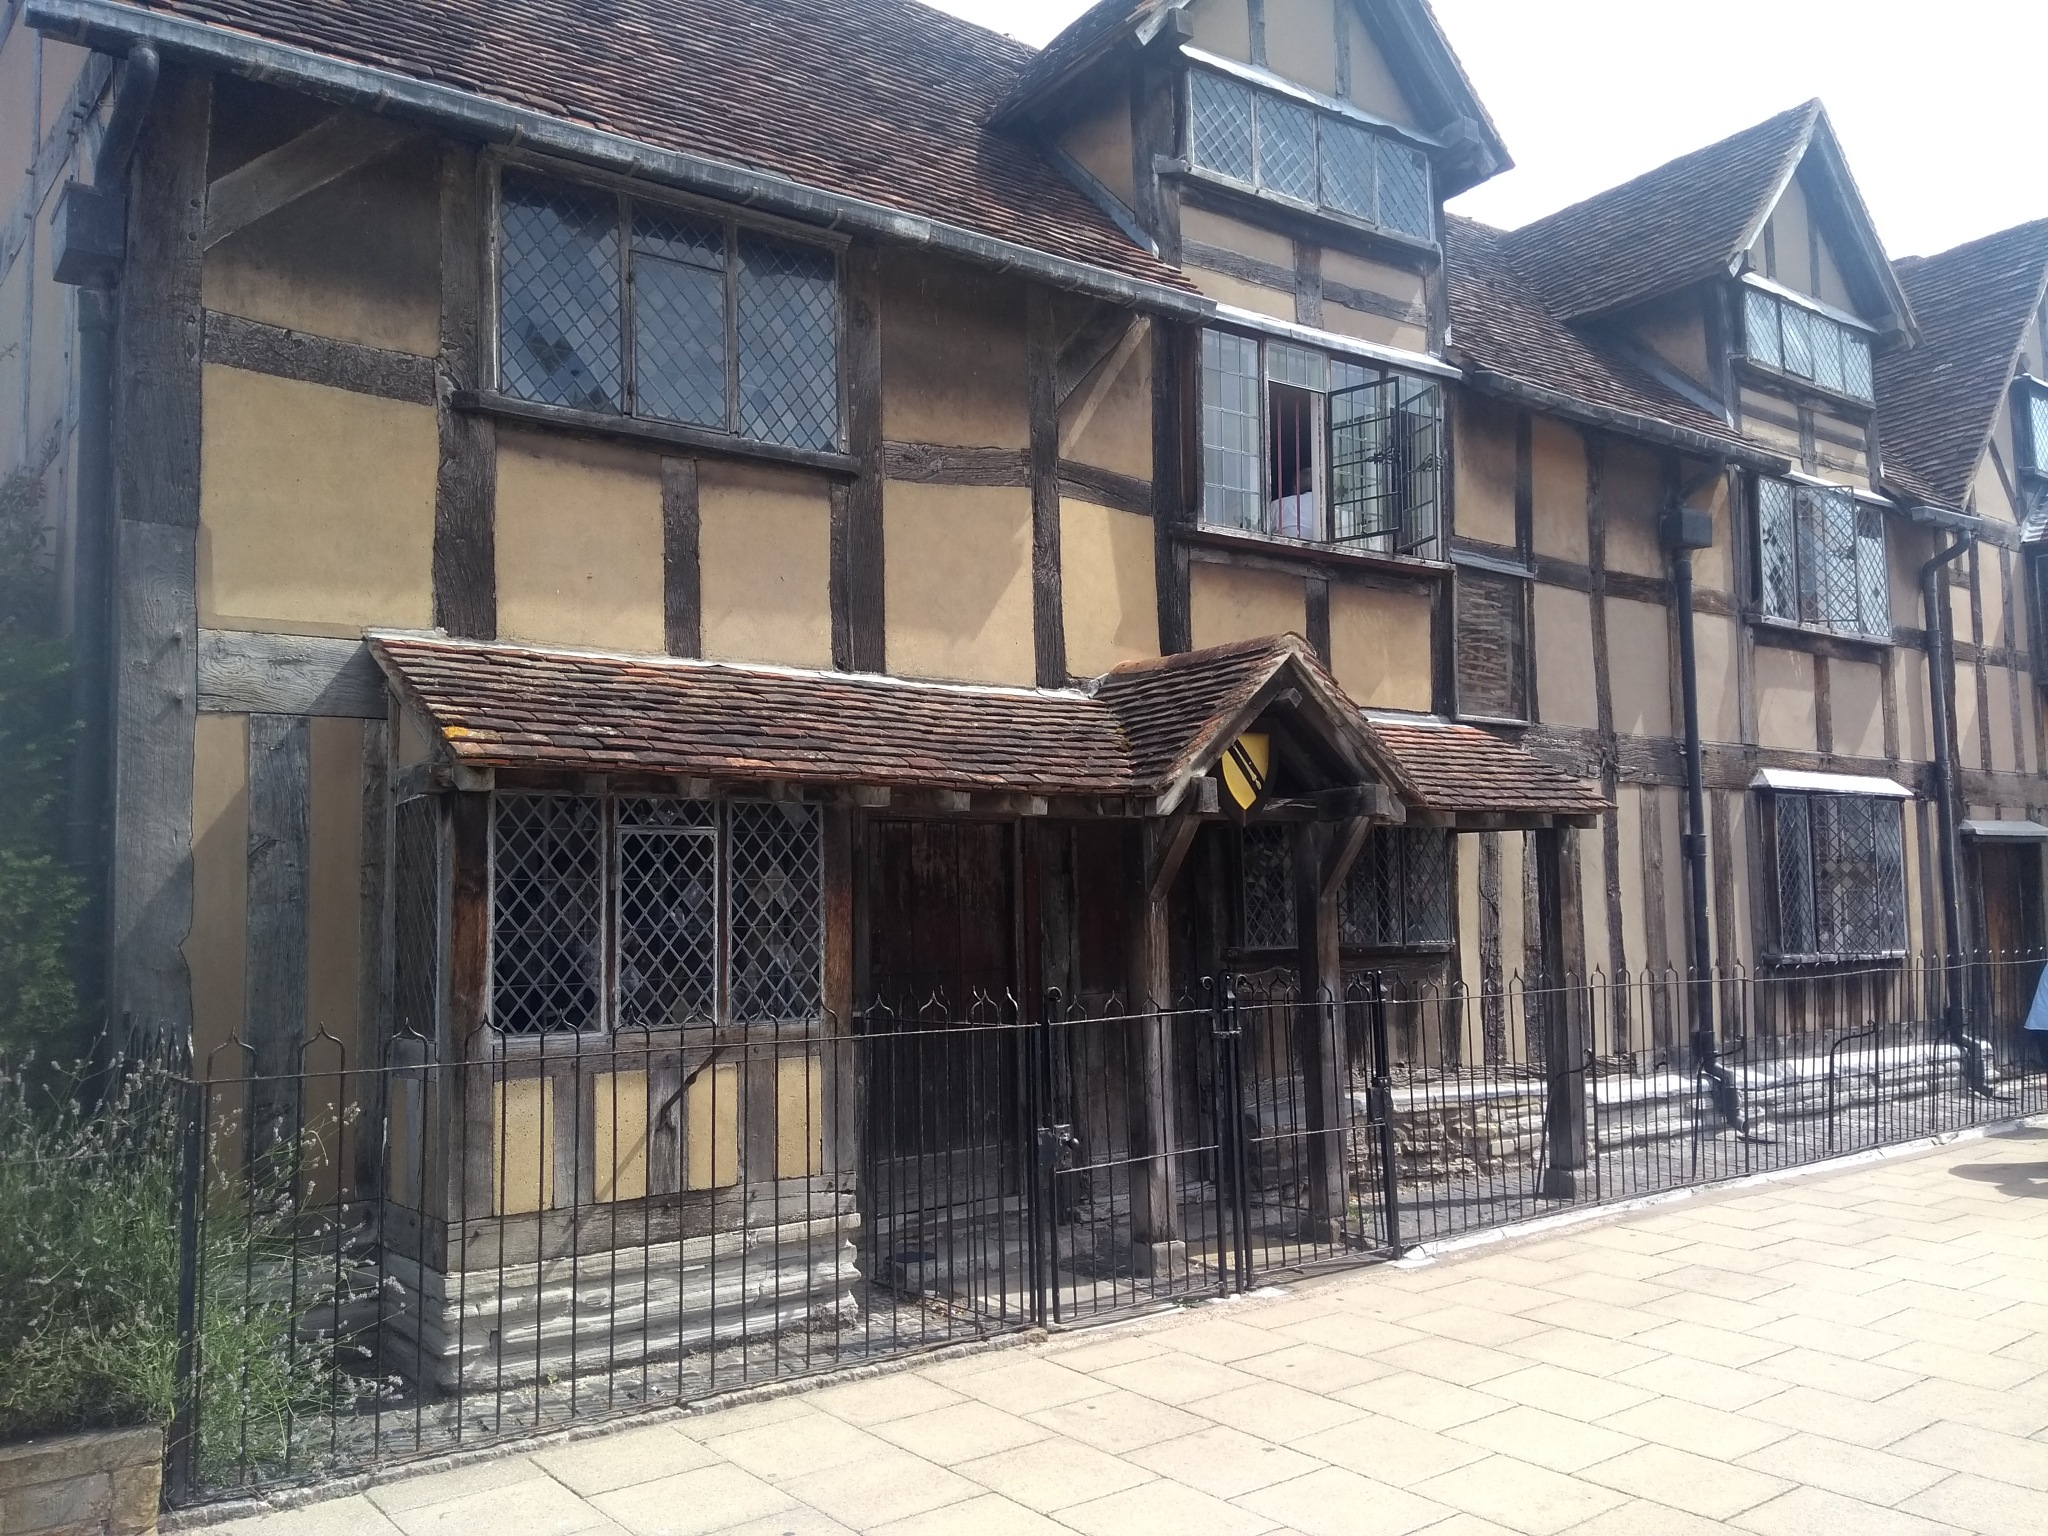 Shakespeare's house by mike.pope.129